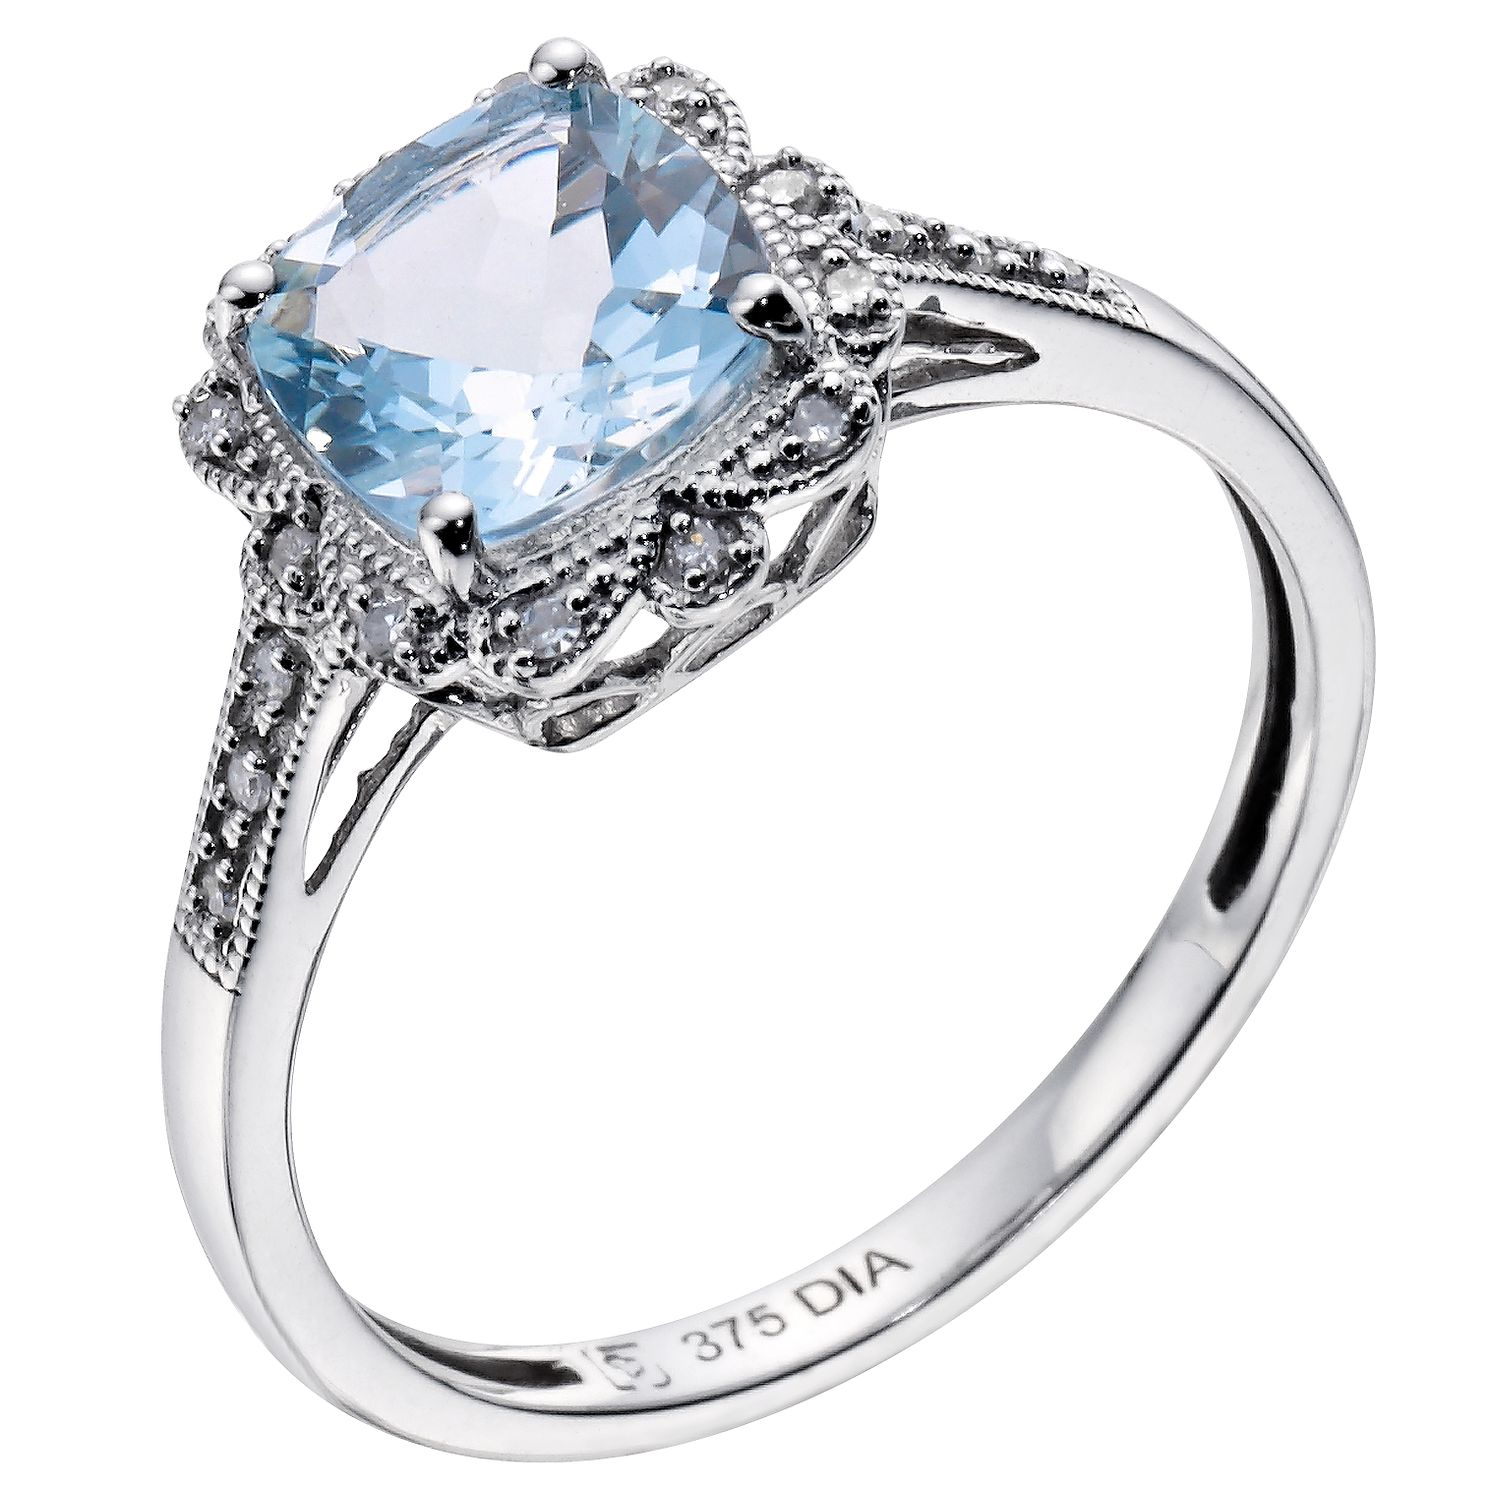 products thumbnail powered jewelry sundara jewellery artisan ring aquamarine online store original raw